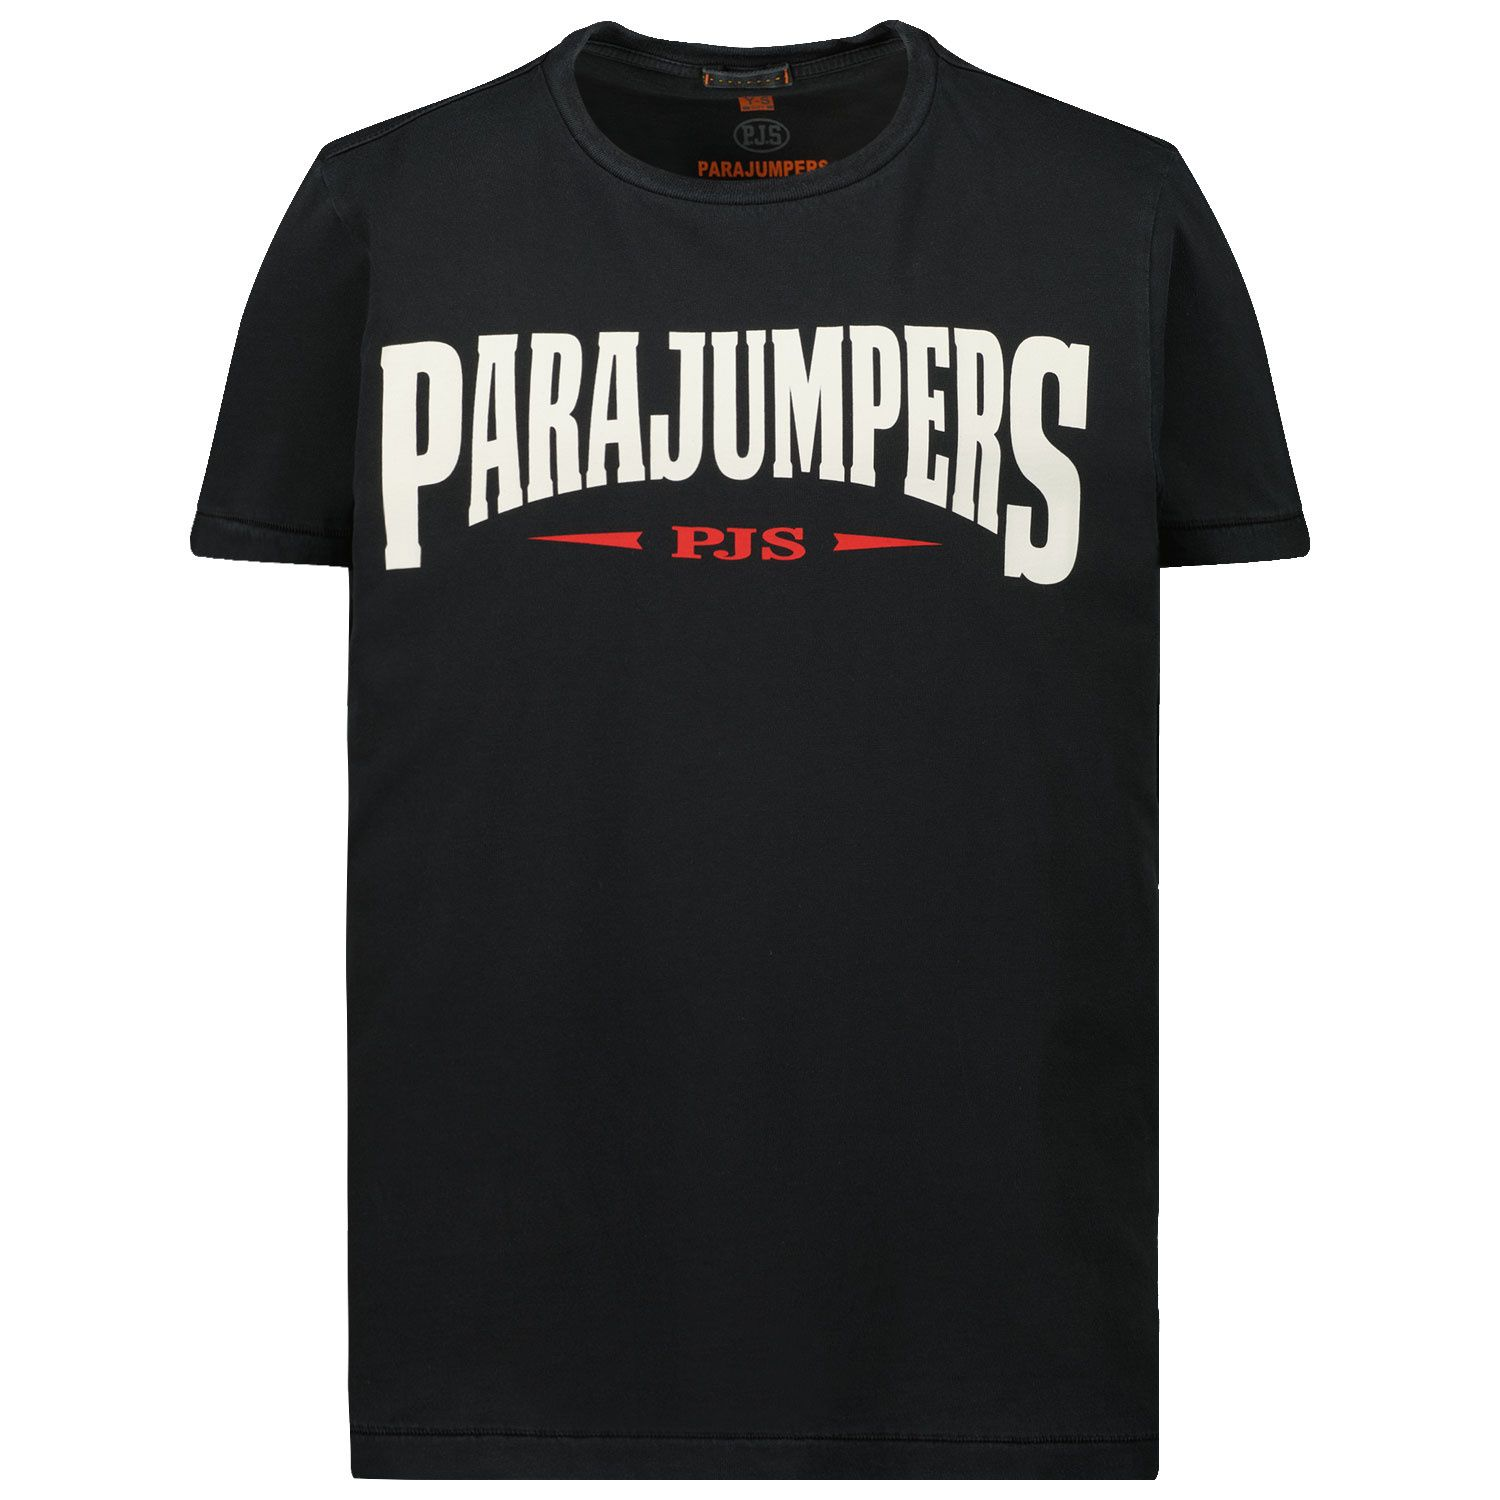 Picture of Parajumpers TS63 kids t-shirt dark blue